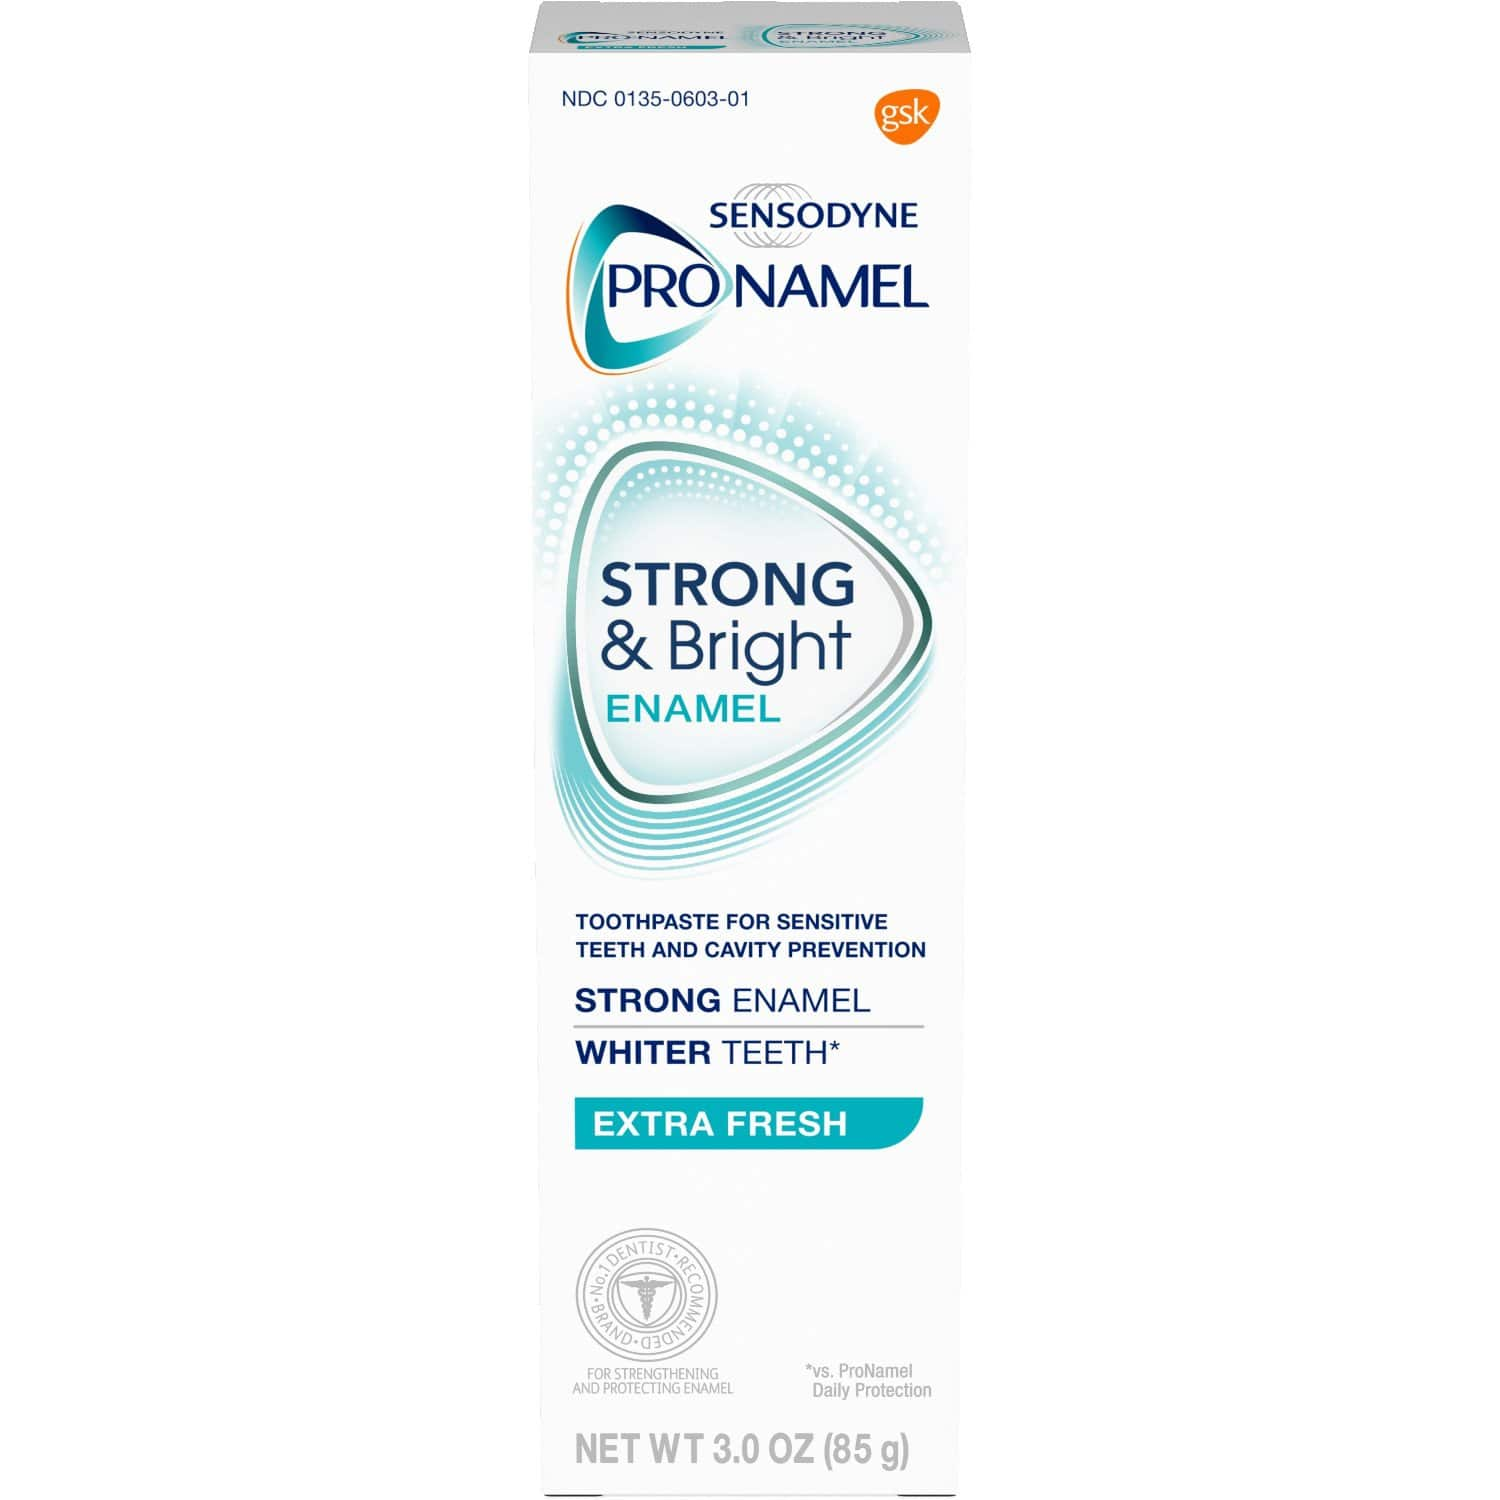 3oz Sensodyne Pronamel Strong and Bright Enamel Toothpaste (Extra Fresh)